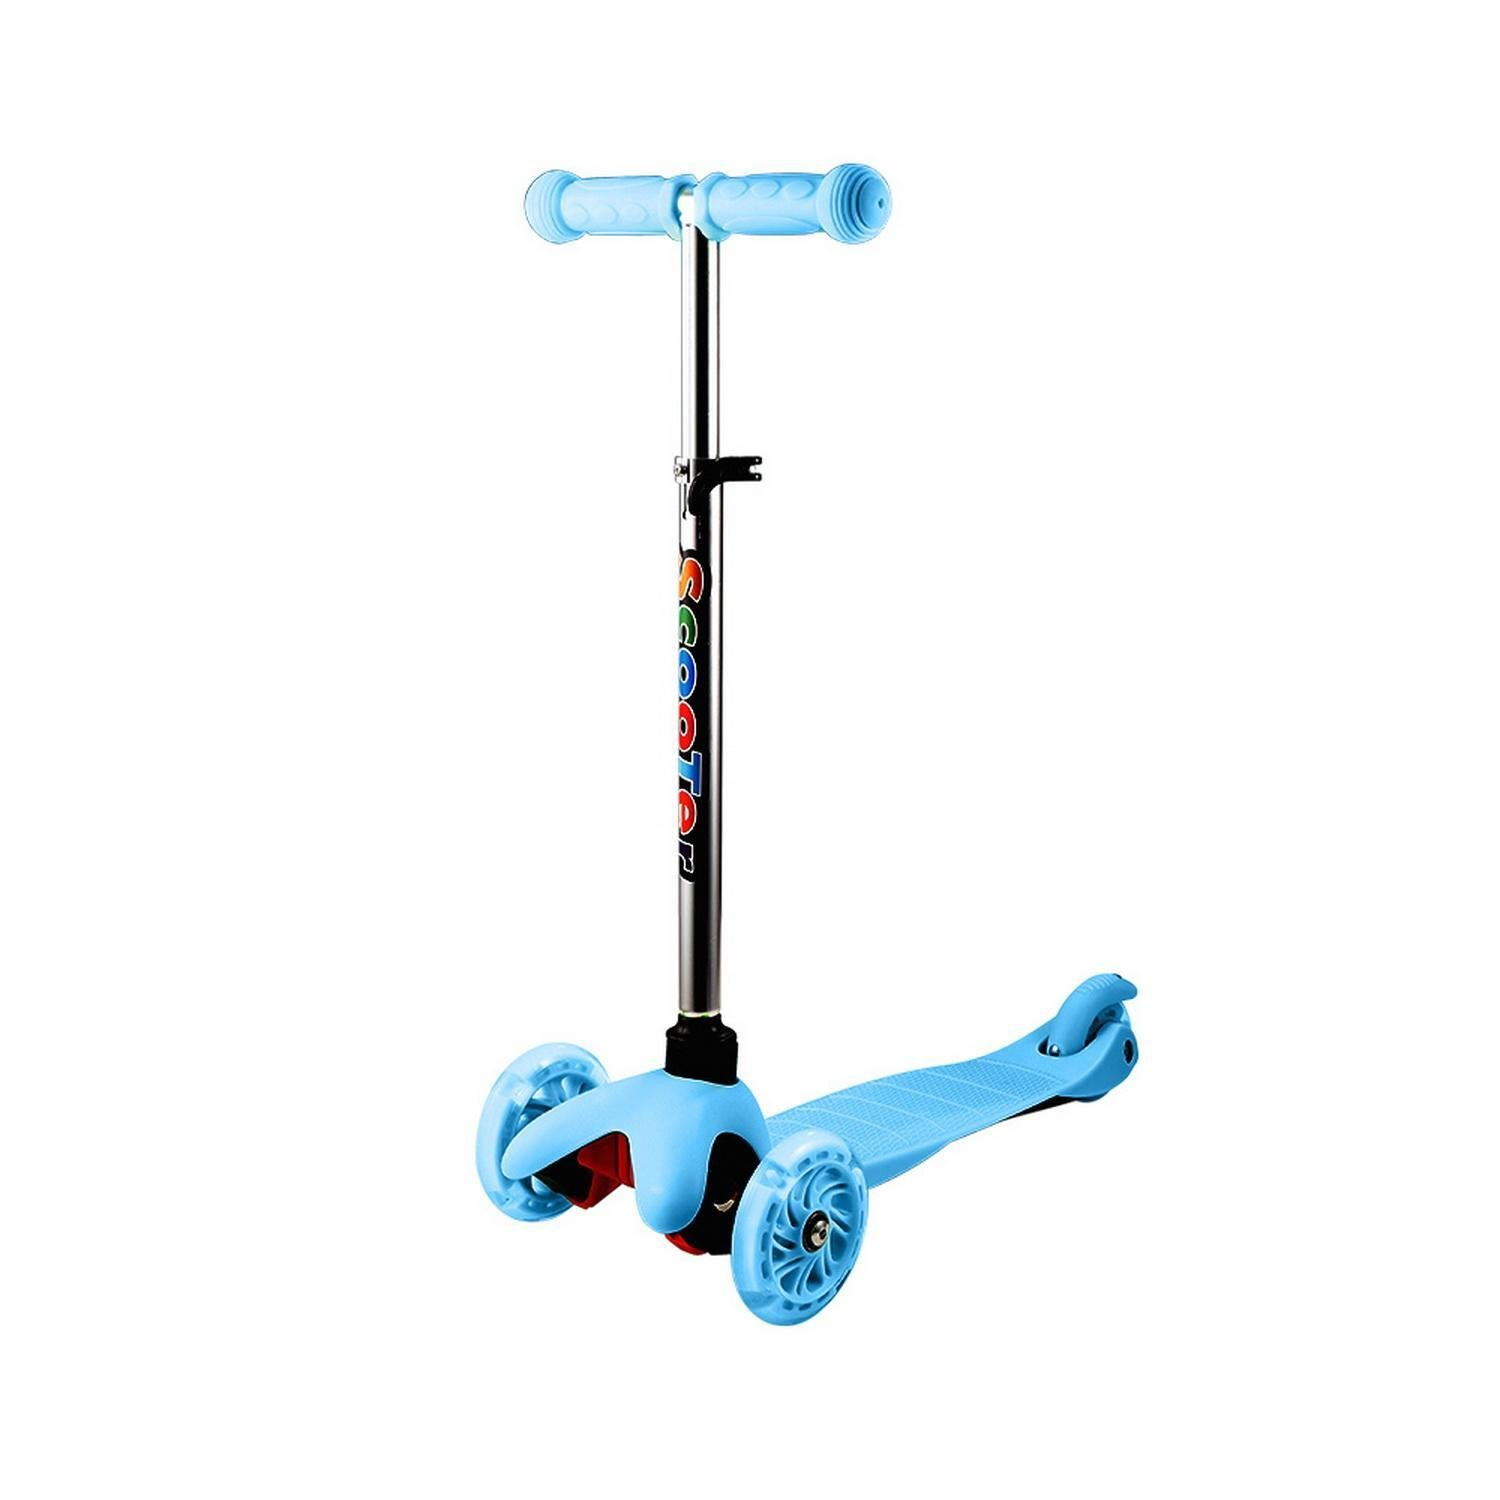 Corgy Kids 3-Wheel 4 Levels Adjustable Height Kick Scooter with Durable LED Light Up Wheels(US Stock)